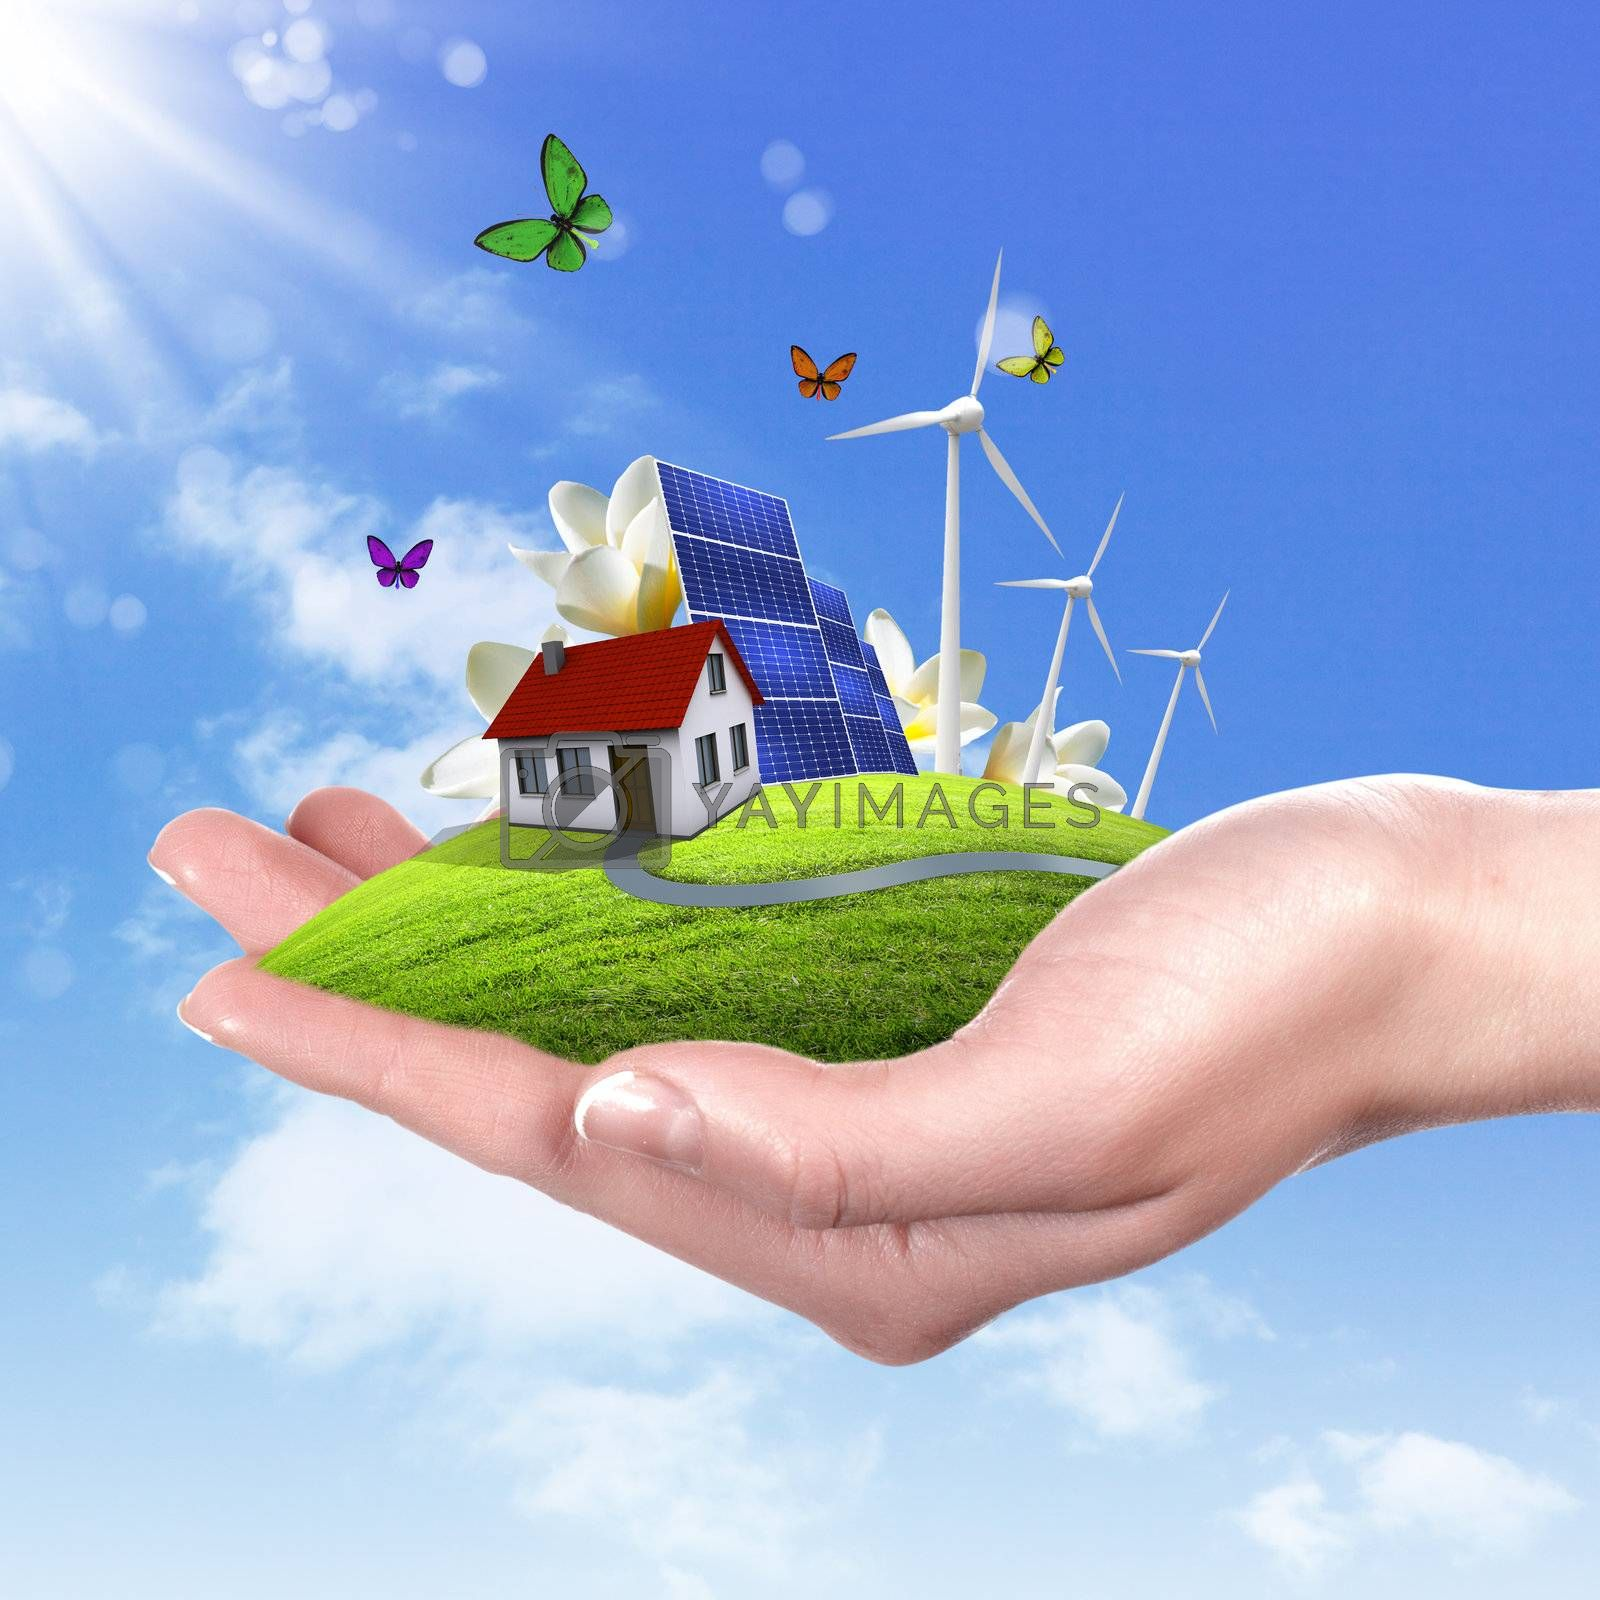 Ecology and safe energy by Sergey Nivens